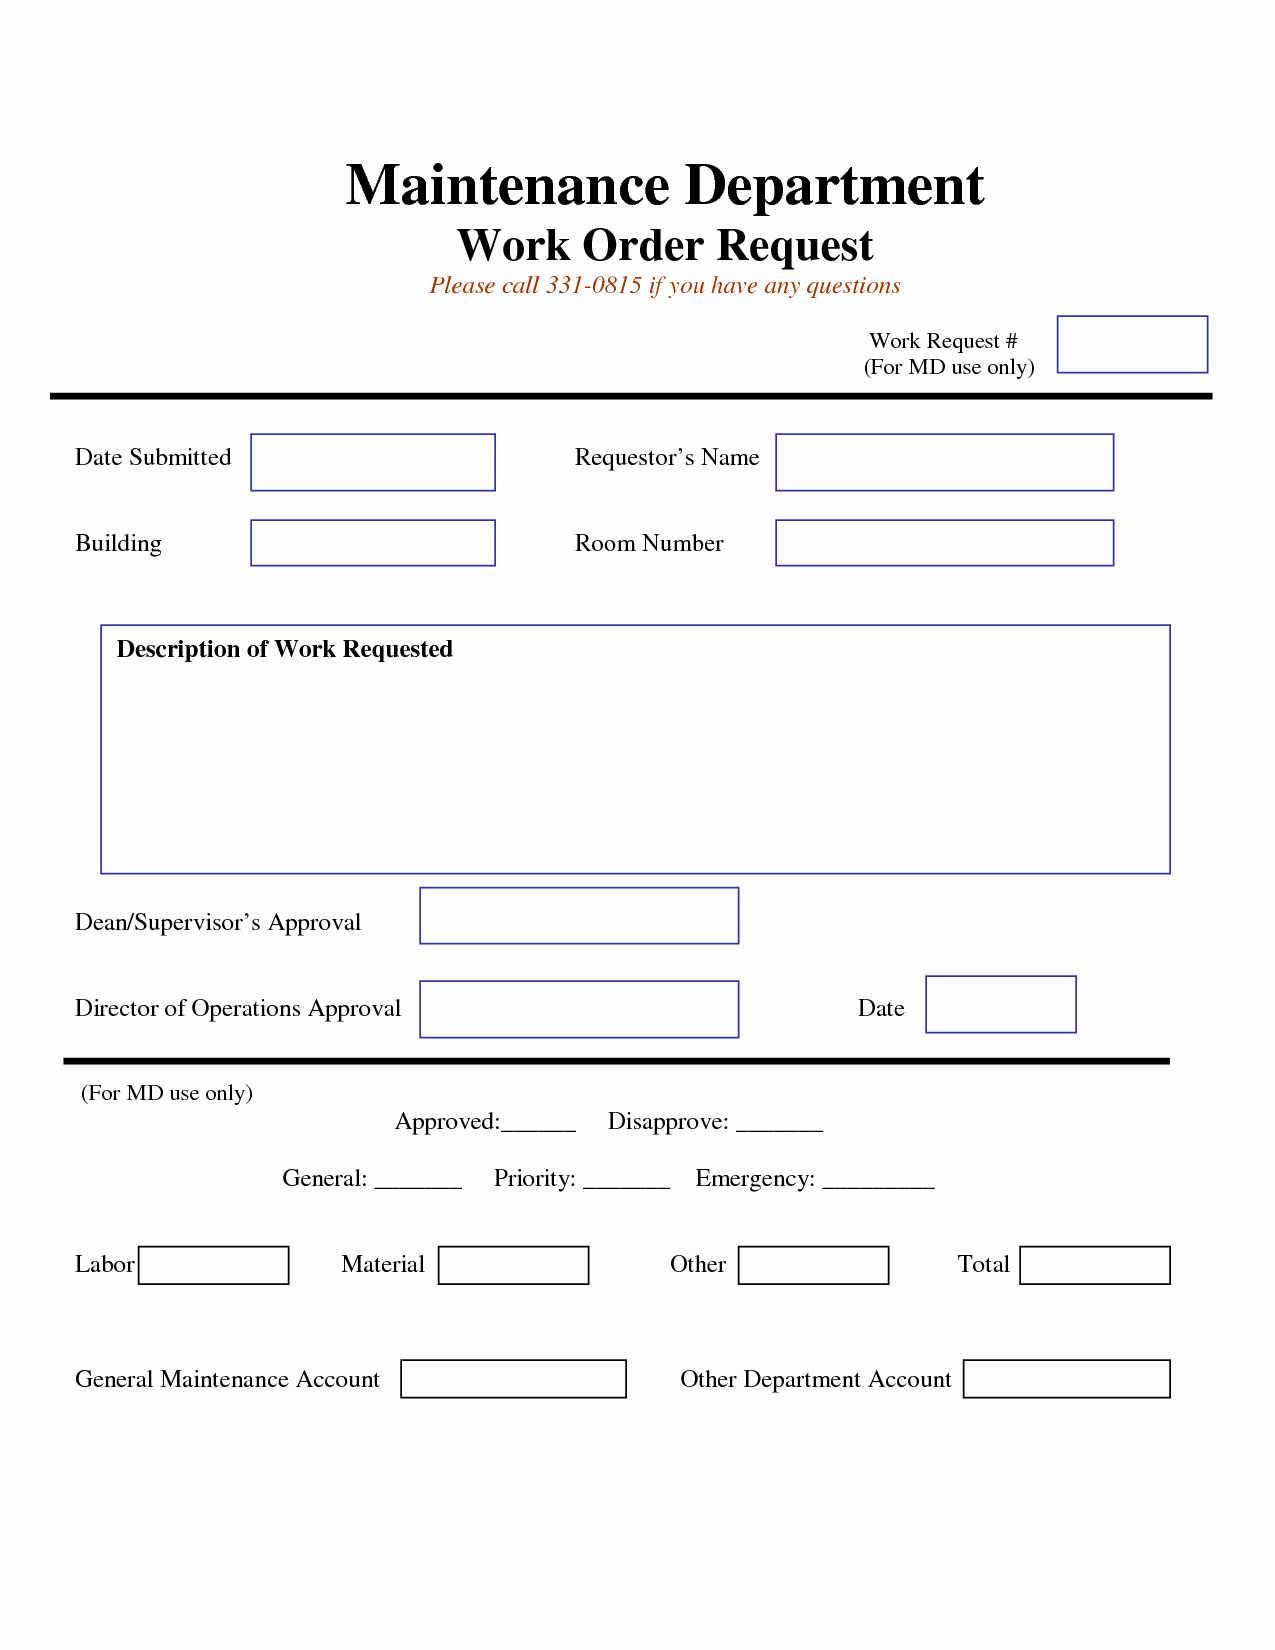 Work order form Template Awesome Work Request form